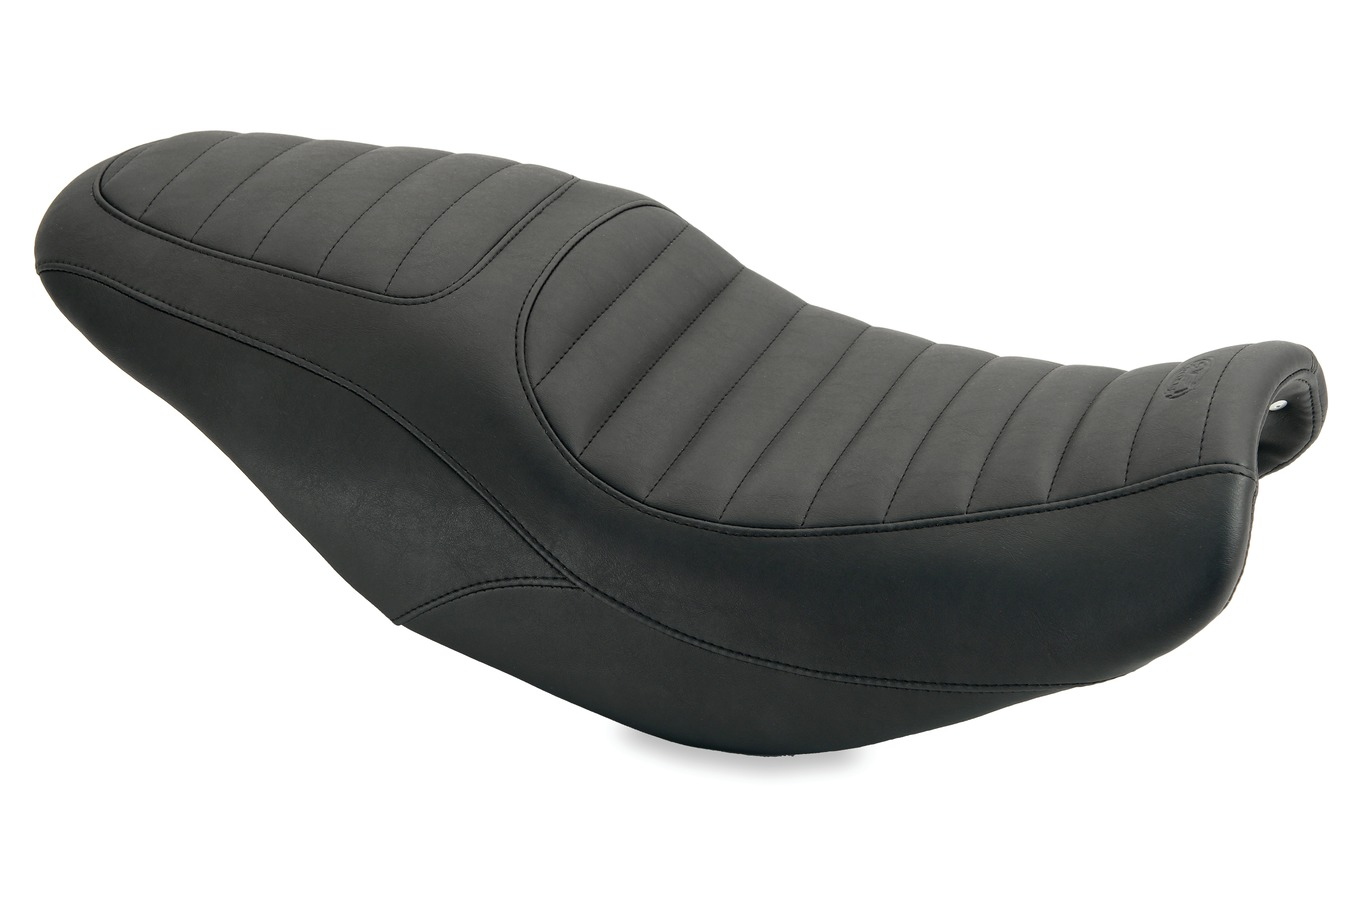 Tripper Fastback™ One-Piece Seat for Ducati Scrambler 800 2015-